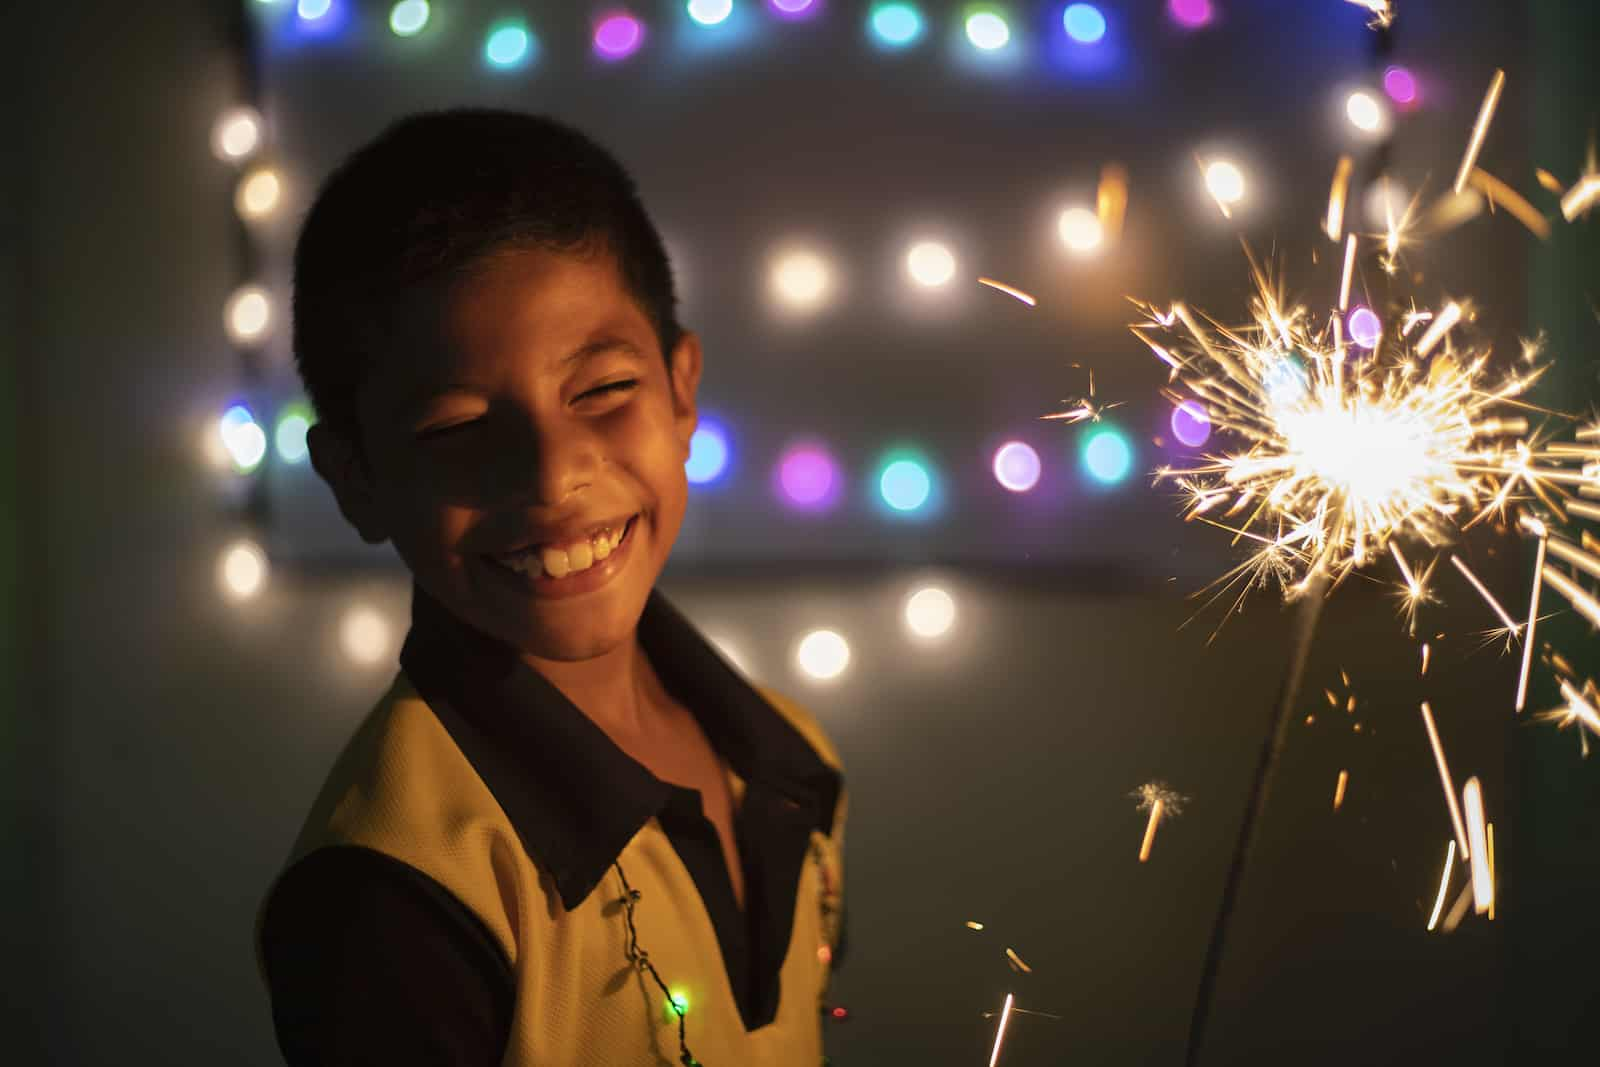 A boy holds a sparkler, surrounded by lights celebrating Christmas in El Salvador